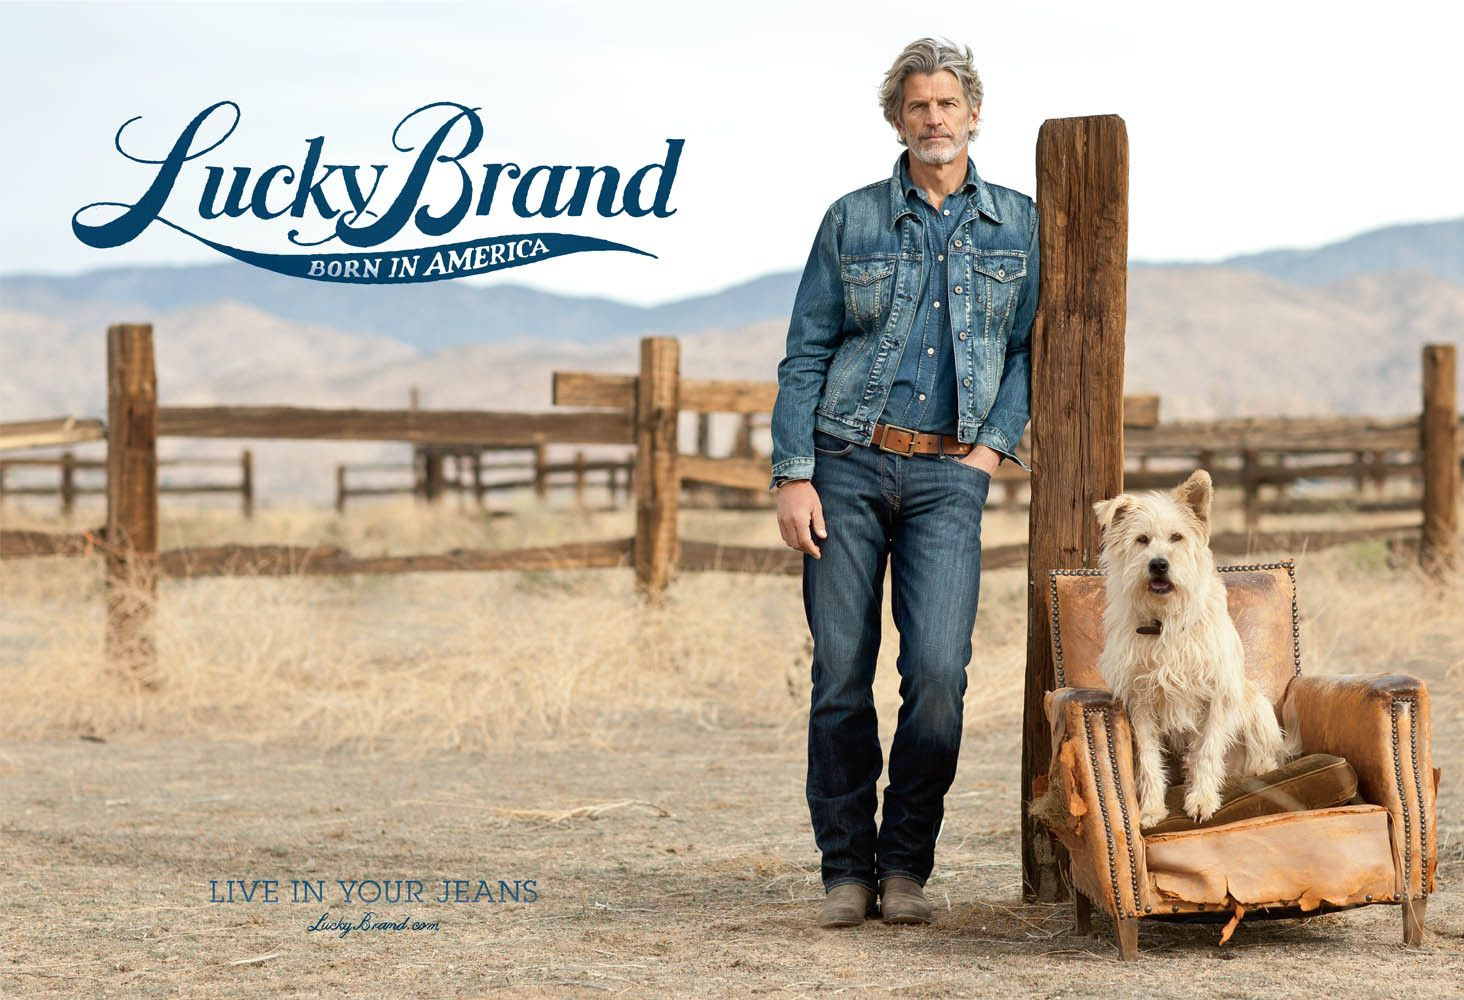 1lucky_brand_ad_campaign_summer_2011_0034.jpg